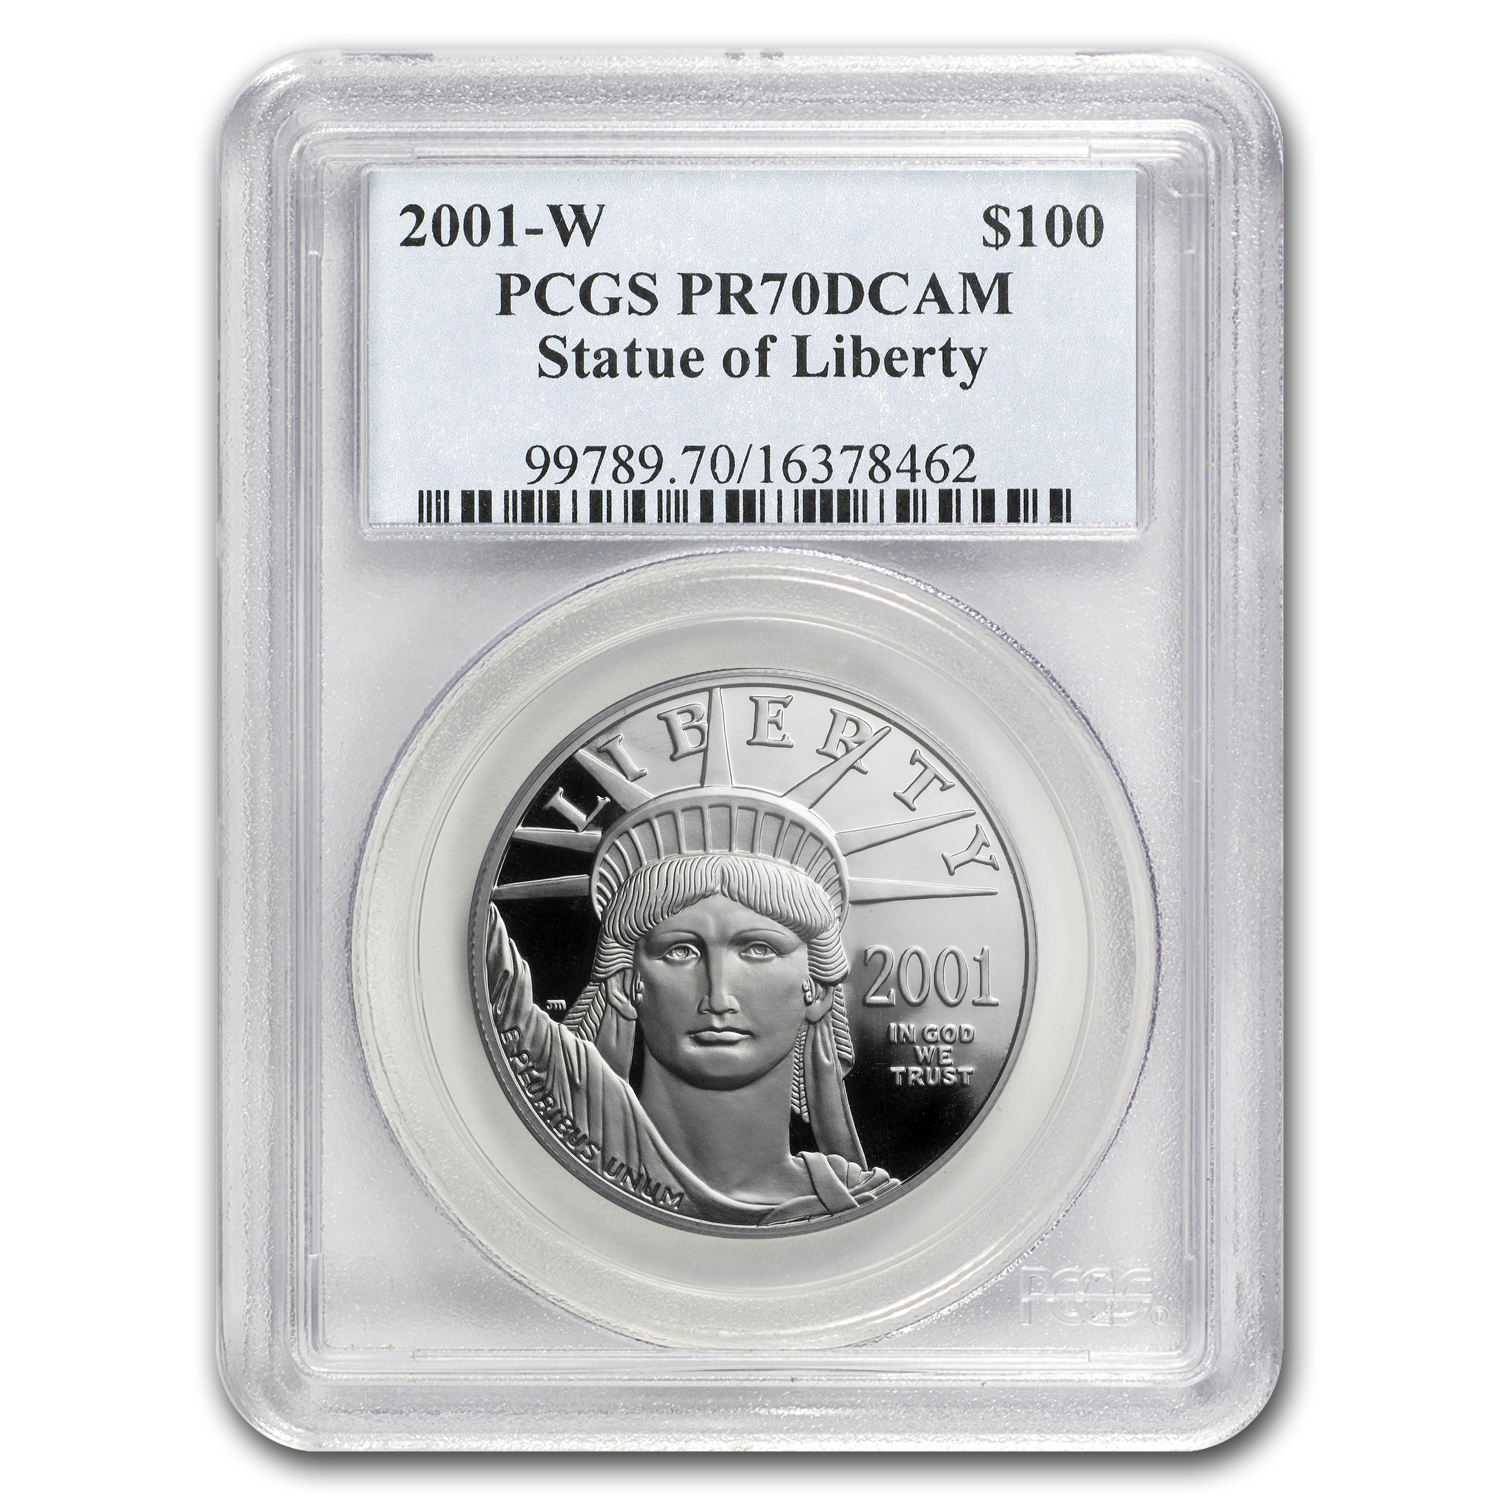 2001-W 1 oz Proof Platinum American Eagle PR-70 PCGS Registry Set